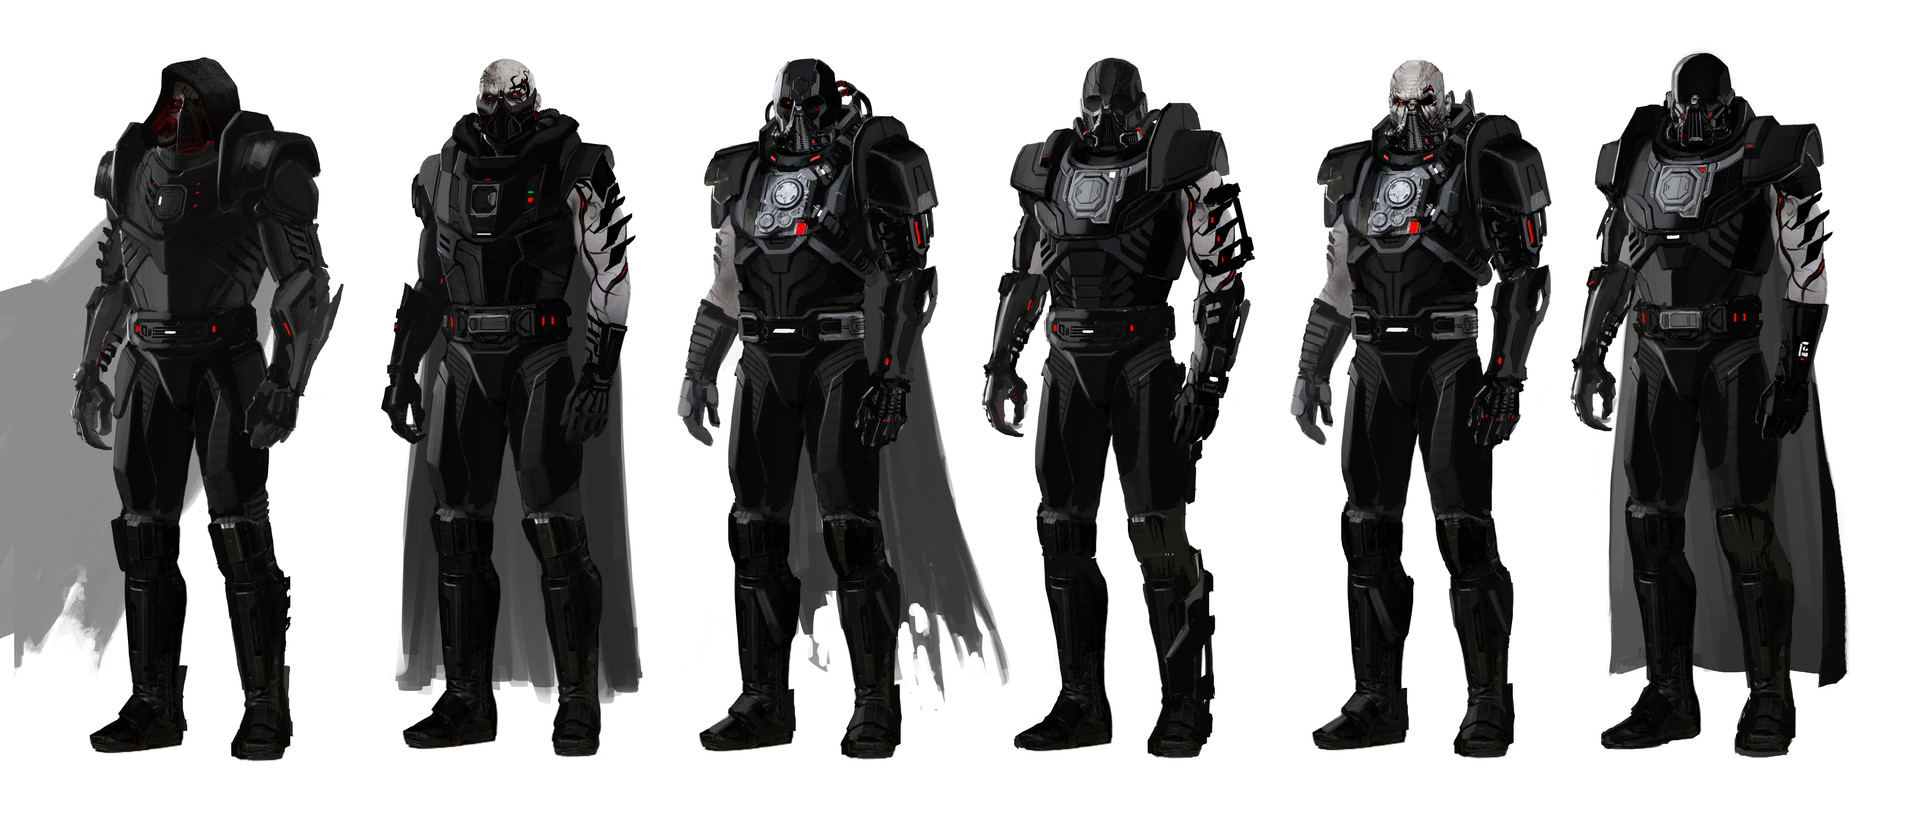 Some rough ideation concepts.